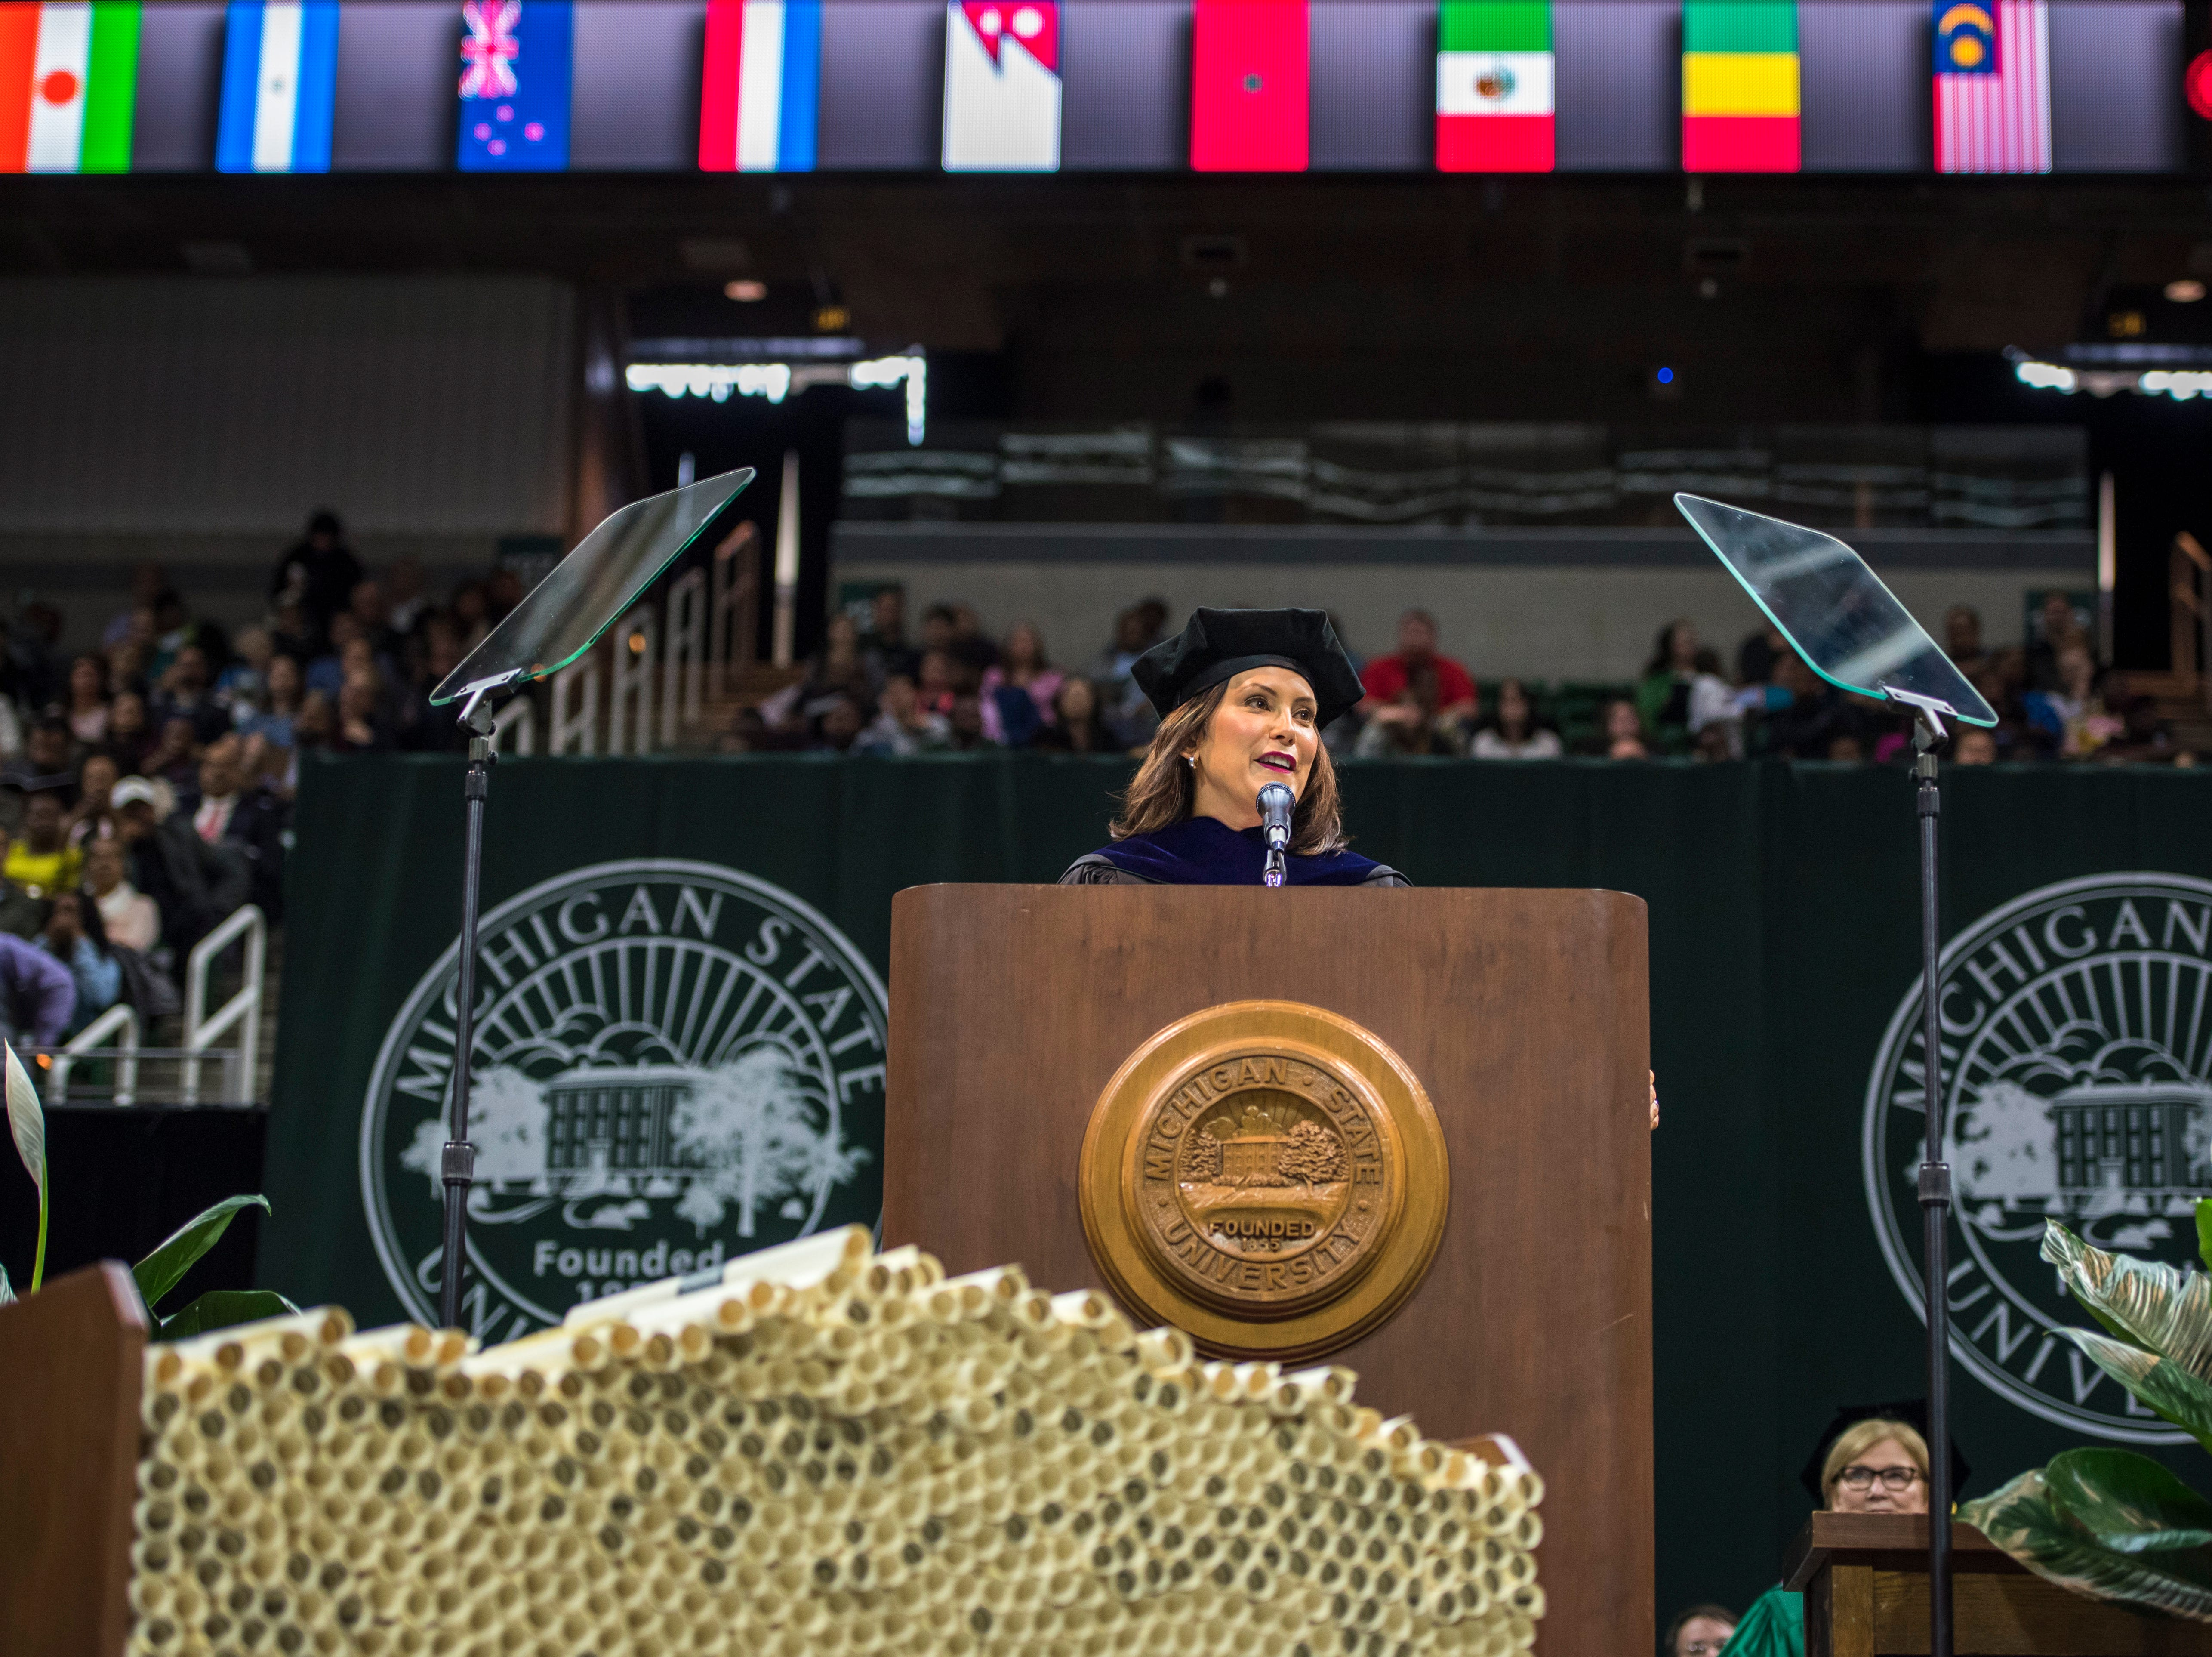 Gov. Gretchen Whitmer addresses the crowd of graduates and their families at Michigan State University.